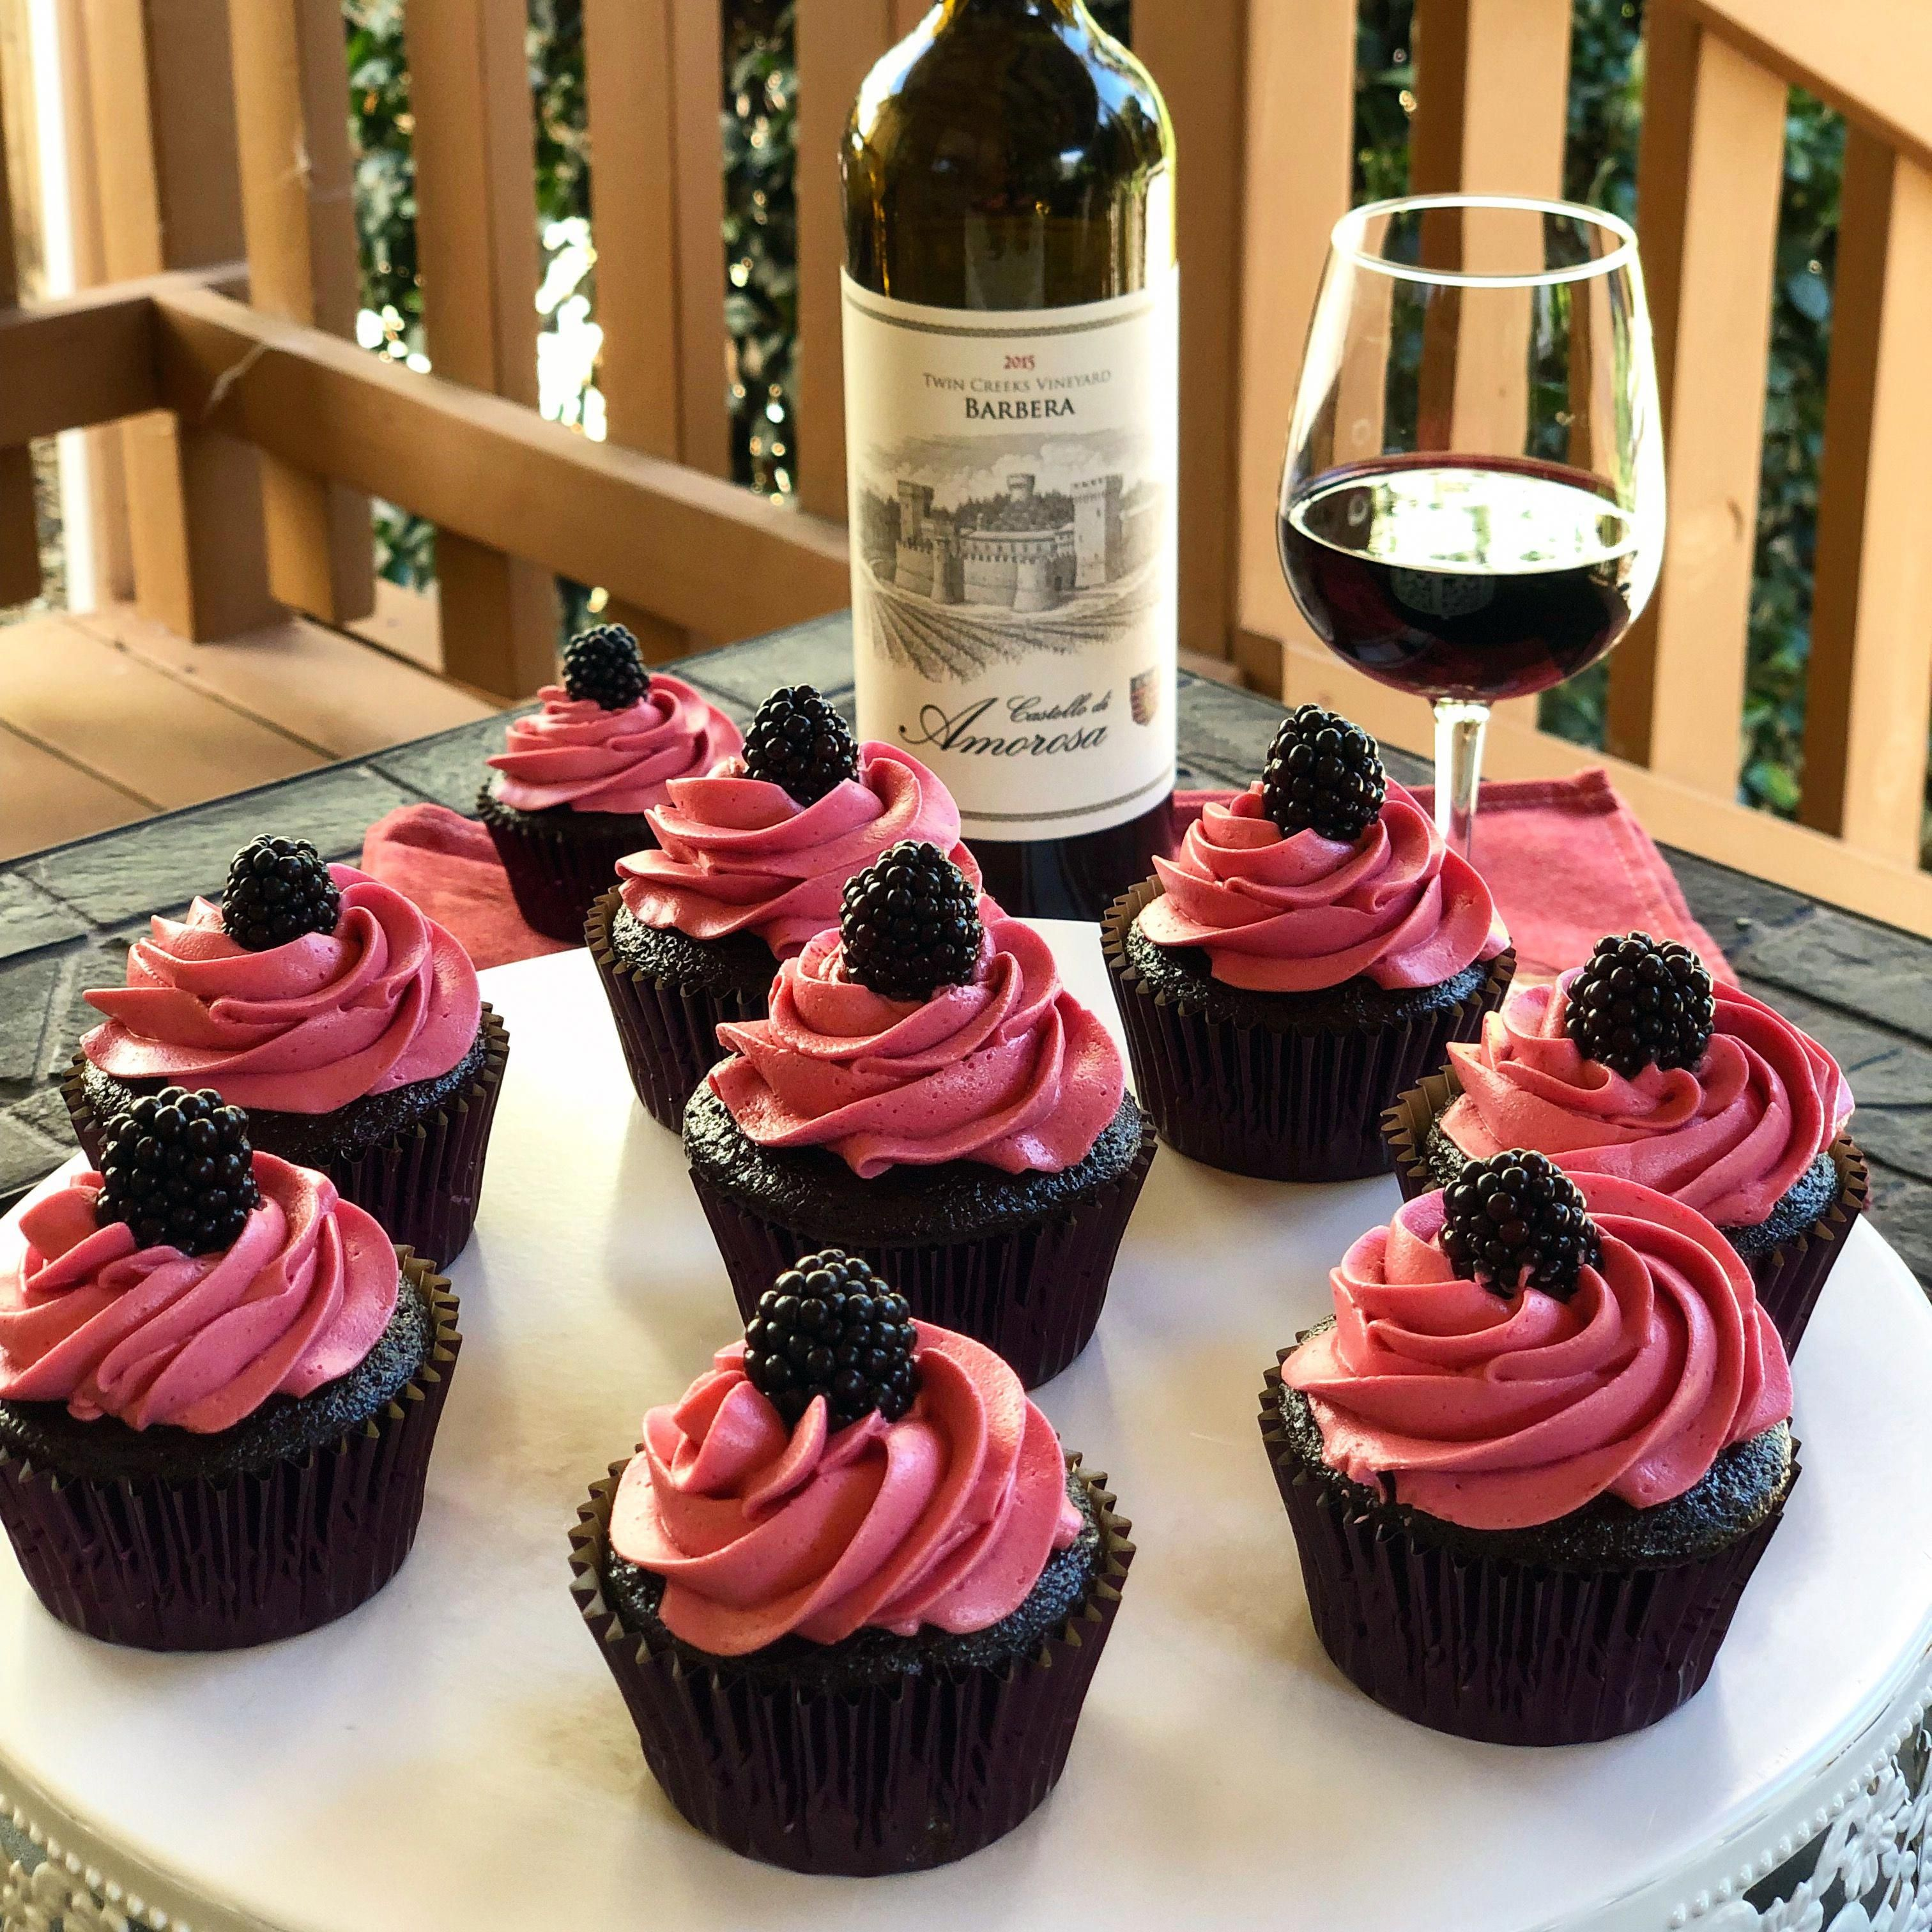 Chocolate Red Wine Cupcakes With Blackberry Buttercream Yummy Cake Chocolate Birthday Blackberry Dessert Wine Cu Wine Cake Wine Cupcakes Wine Desserts